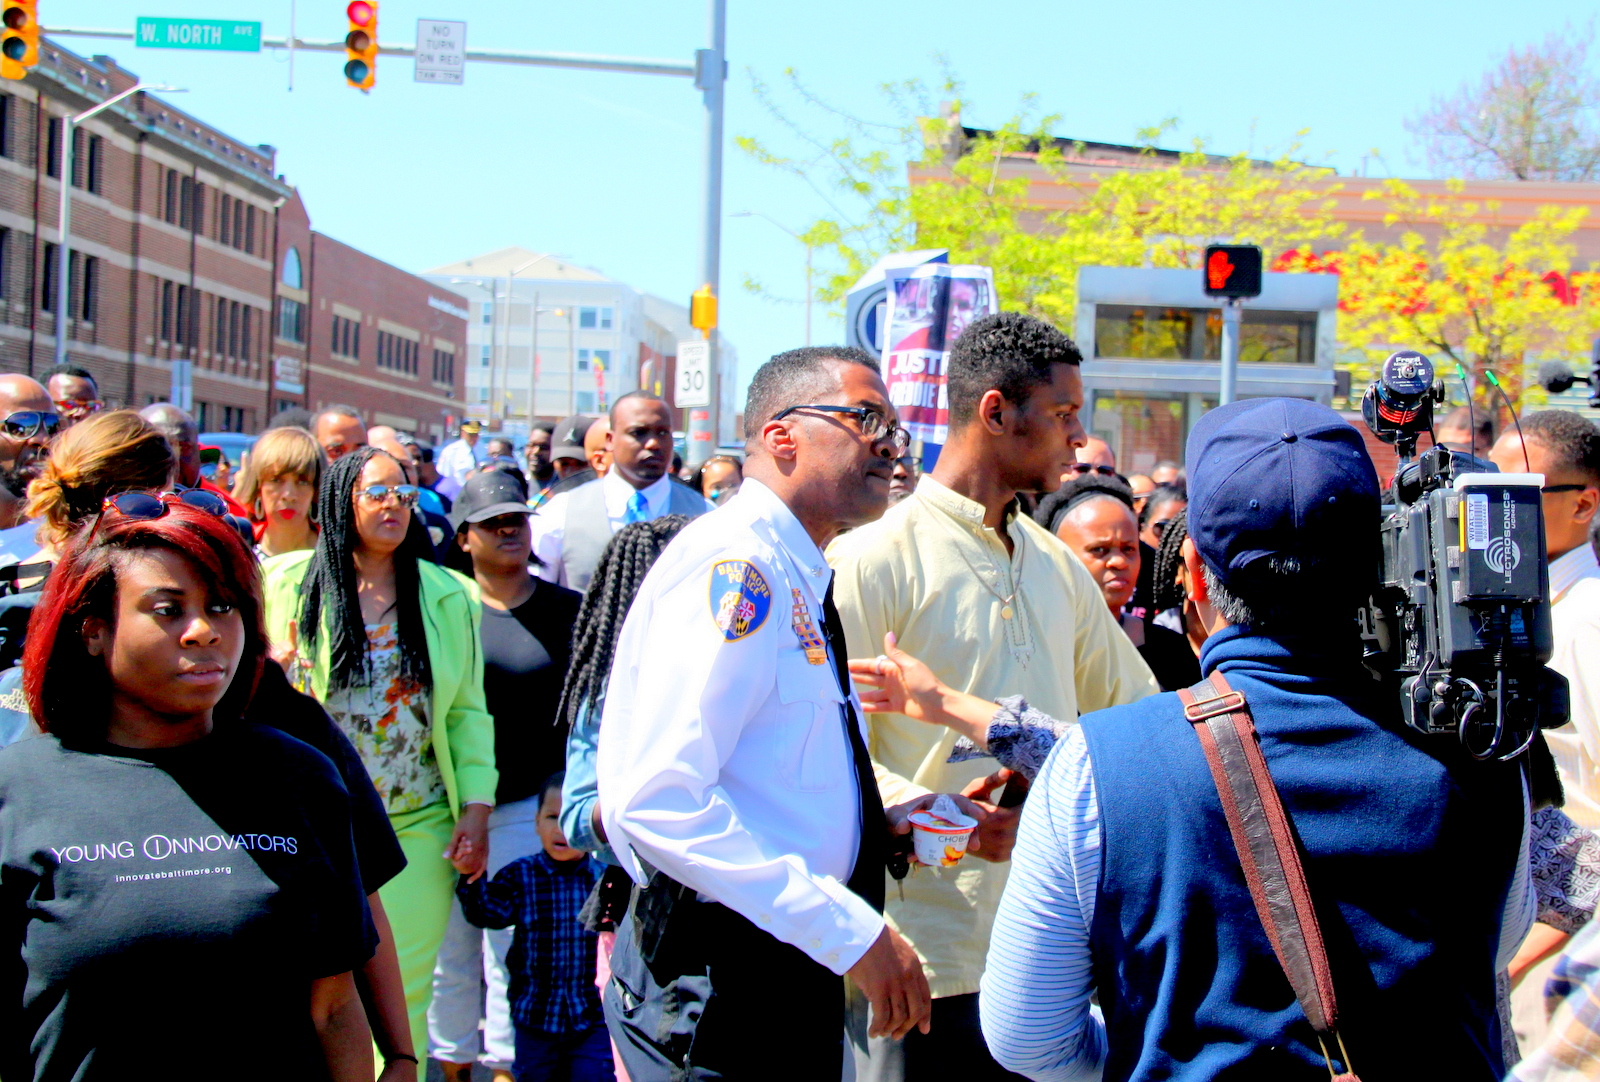 Lt. Col. Melvin Russell directing the crowd at Sunday's Unity March at Penn-North. (Louie Krauss)